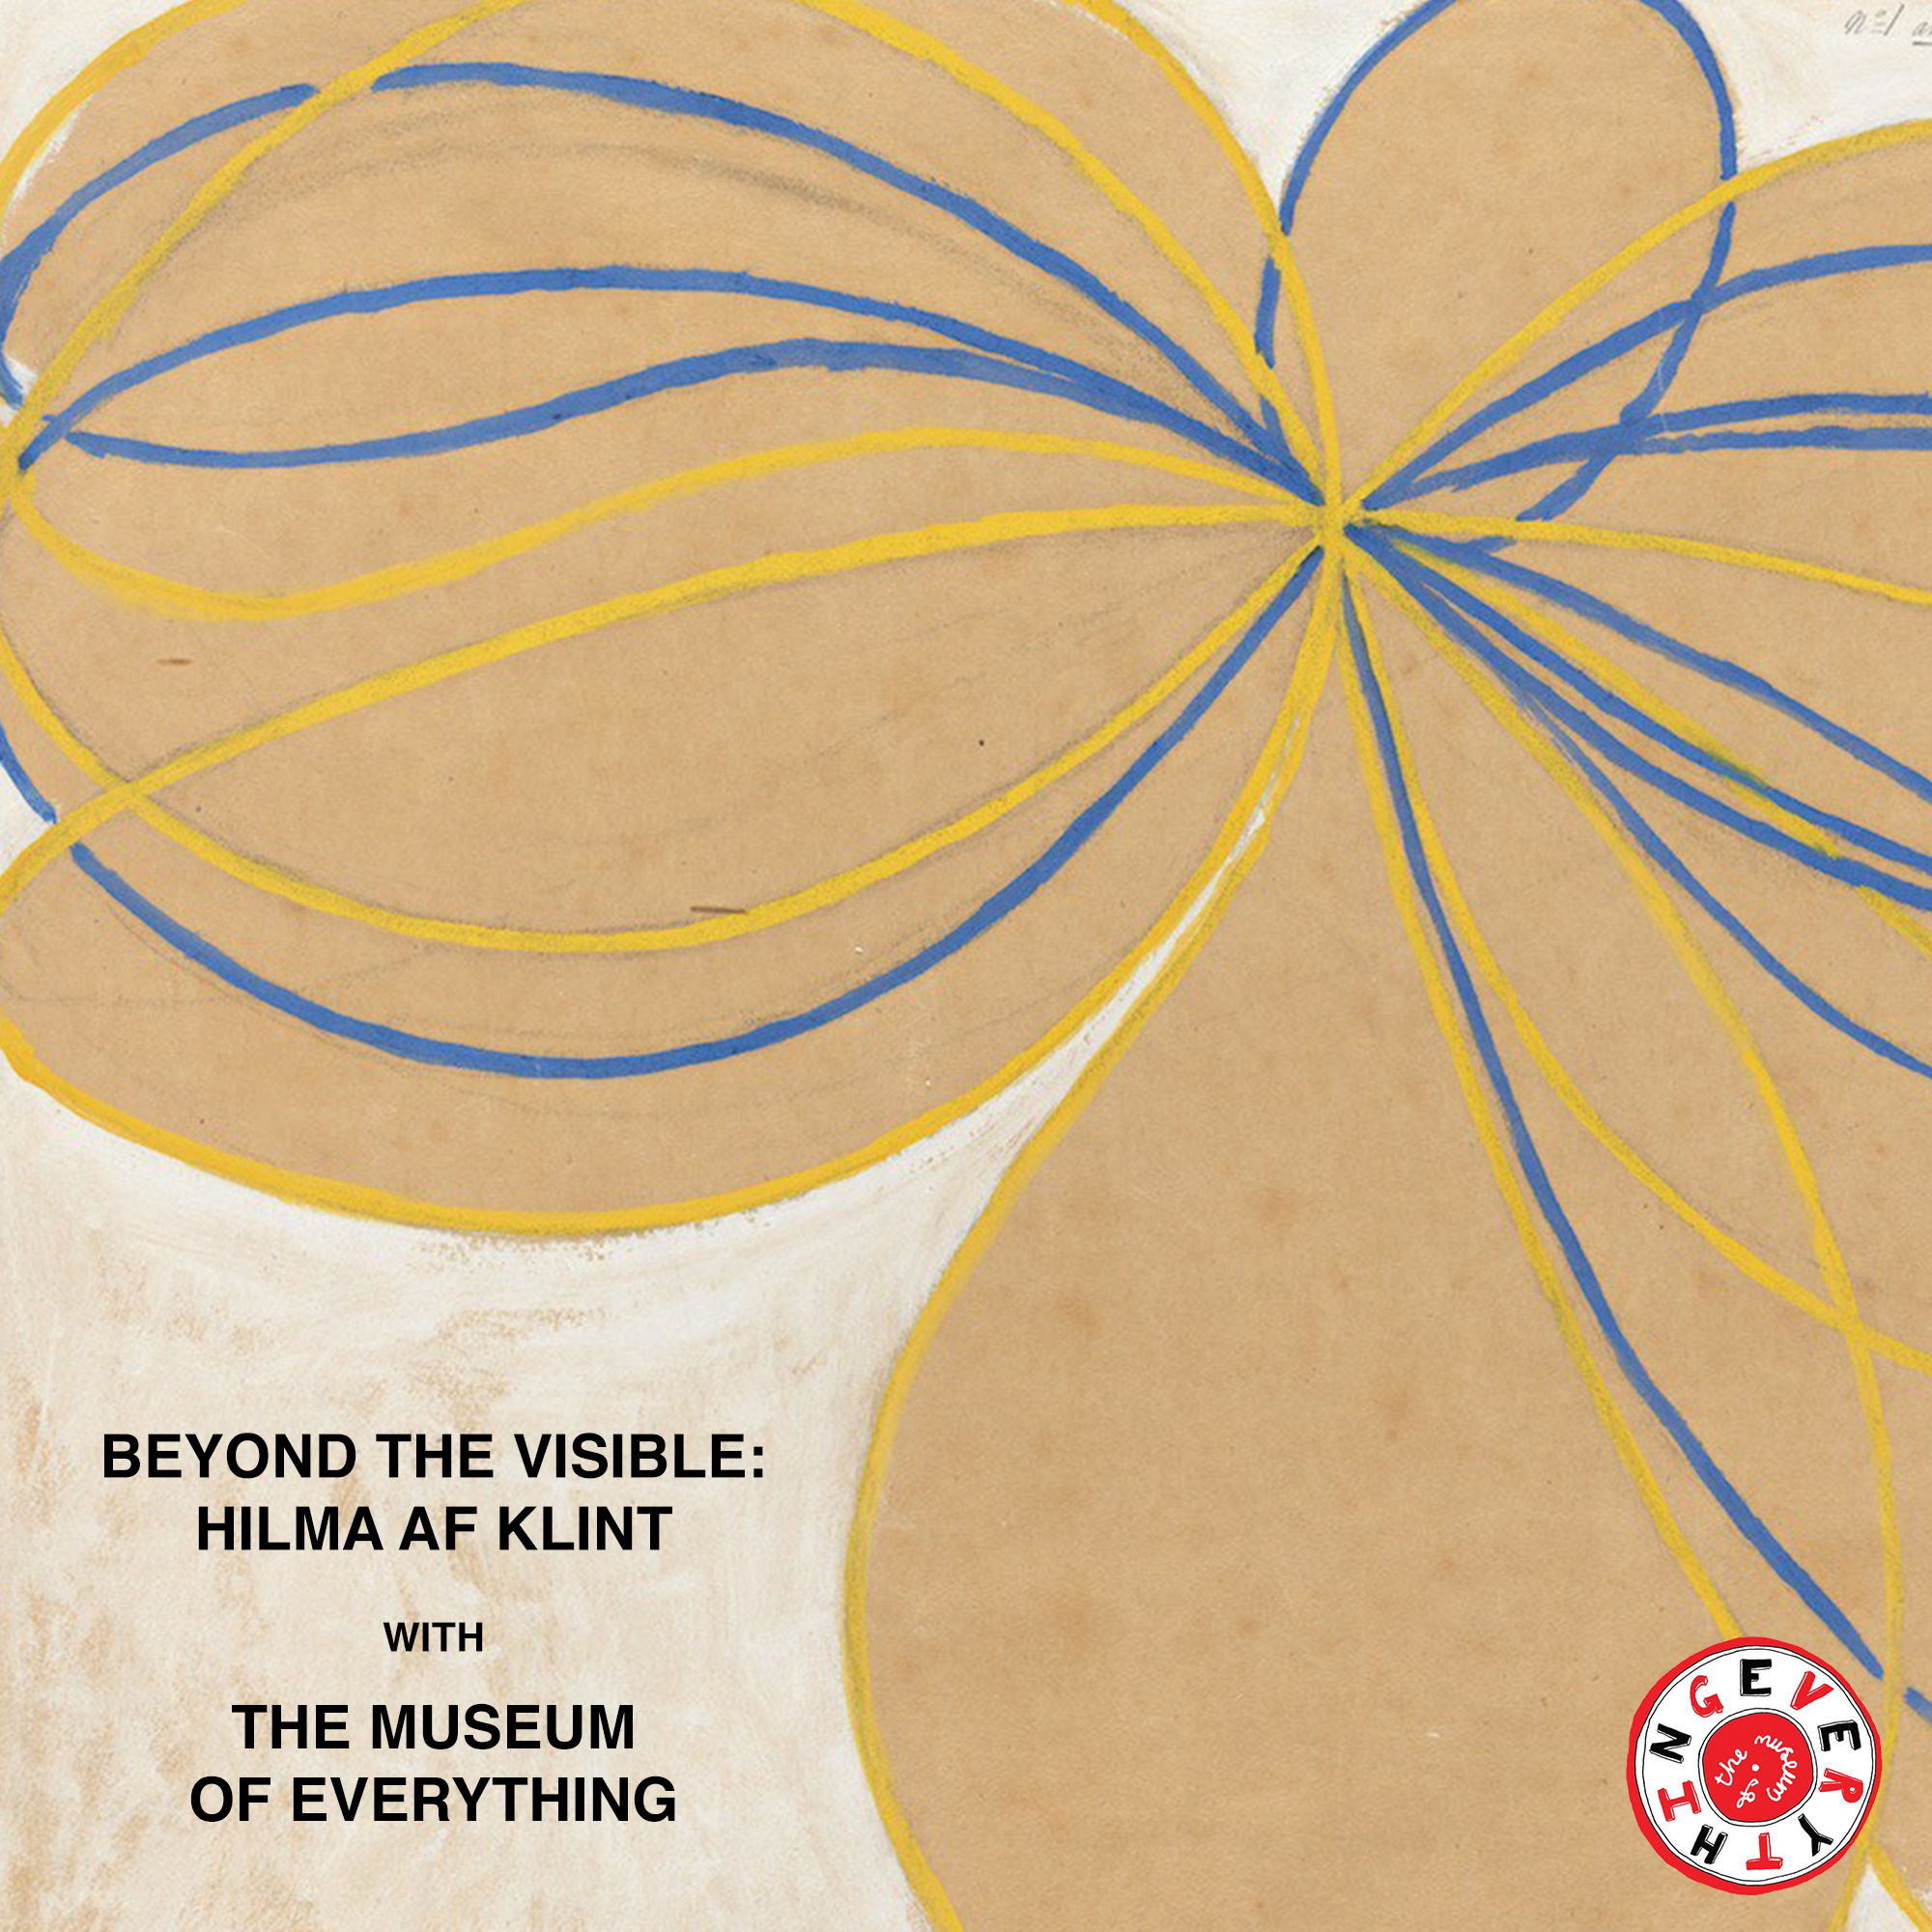 Beyond the Visible: Hilma af Klint with The Museum of Everything- Example Screener